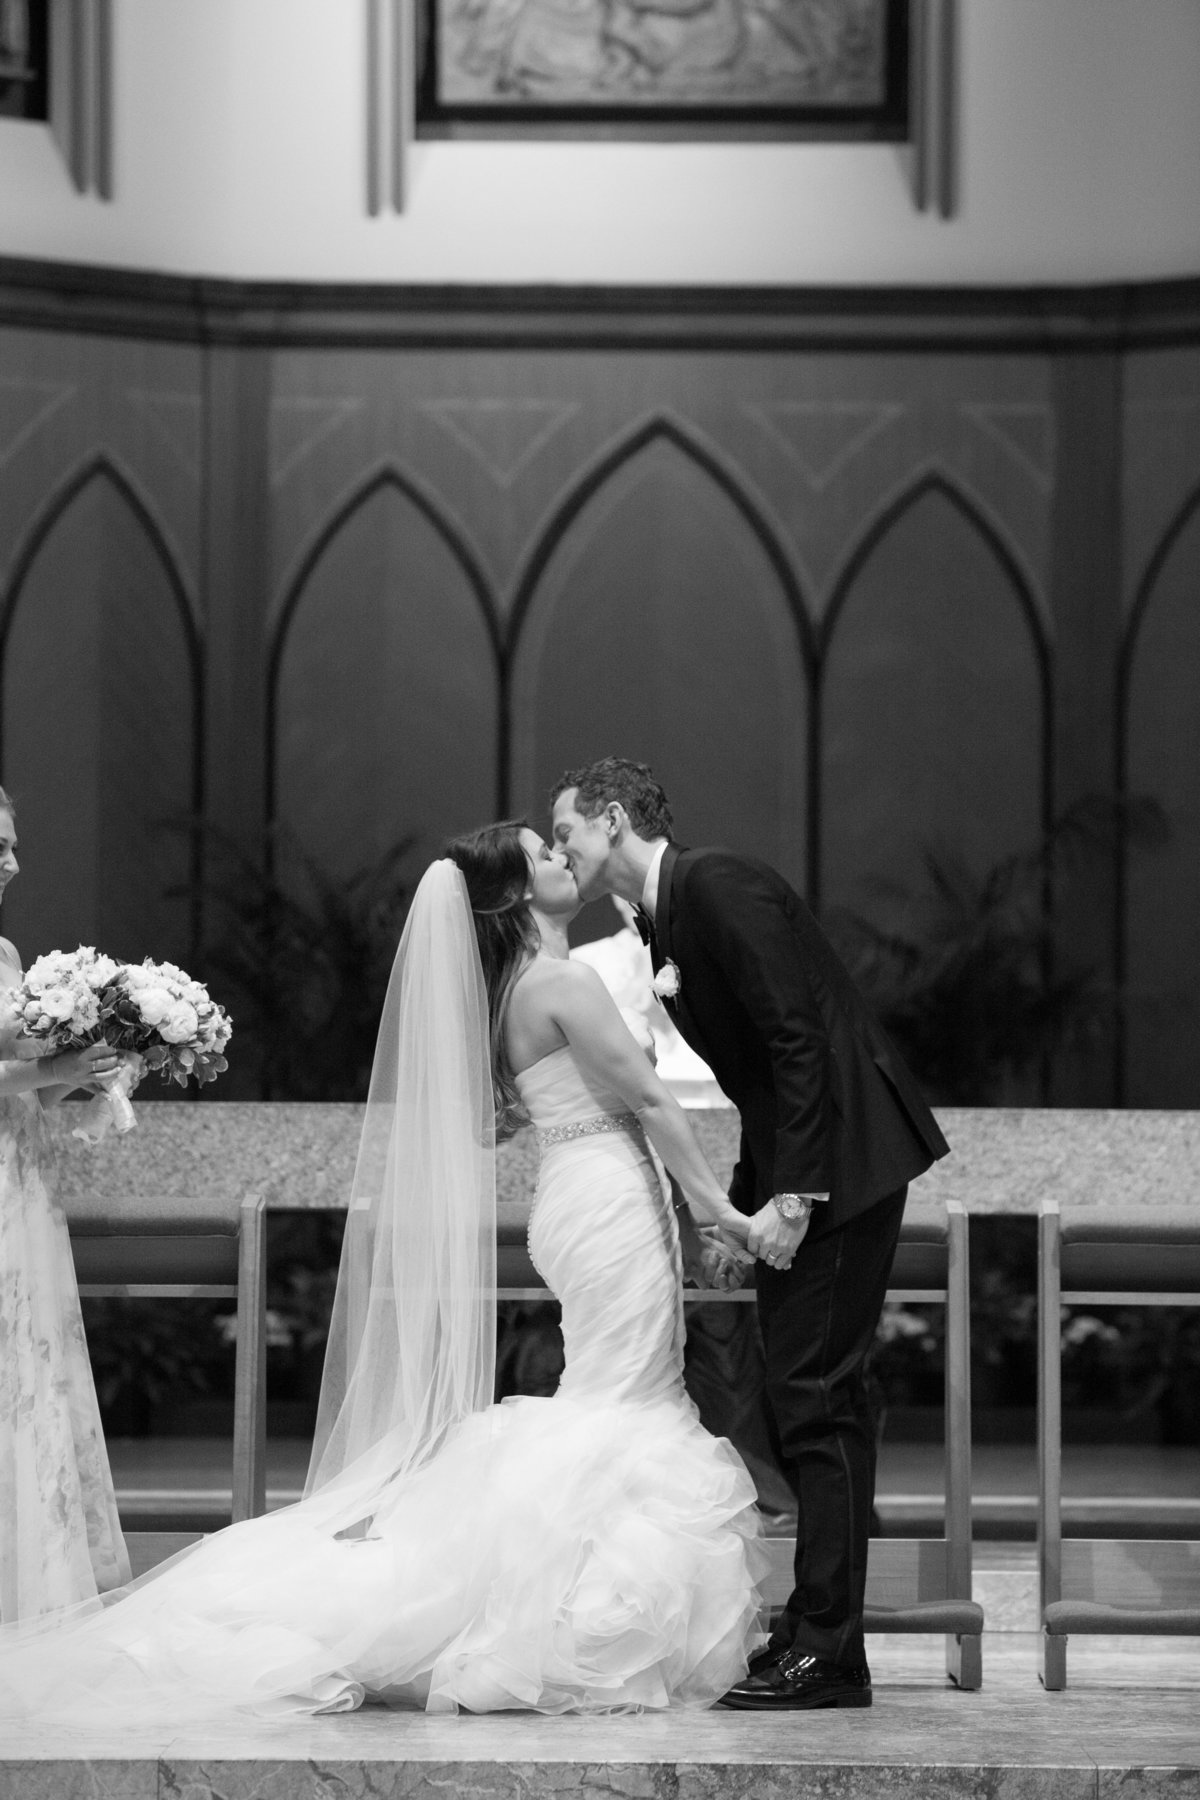 Nicole and Paul Wedding - Natalie Probst Photography 327